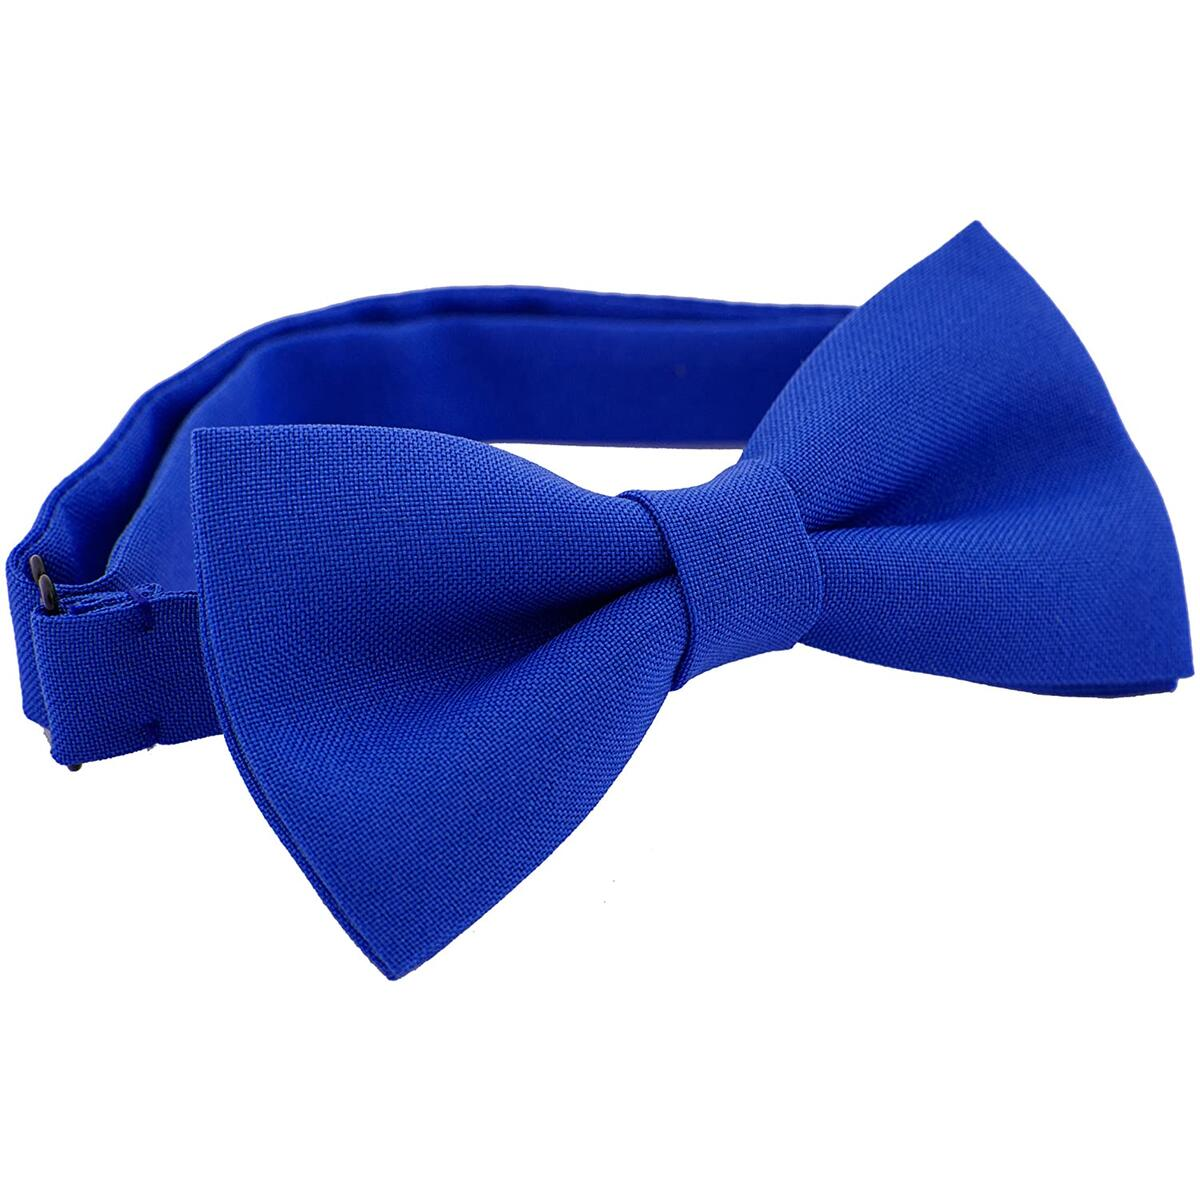 Classic Pre-Tied Bow Tie Formal Solid Tuxedo, by Bow Tie House (Medium, Electric Blue)